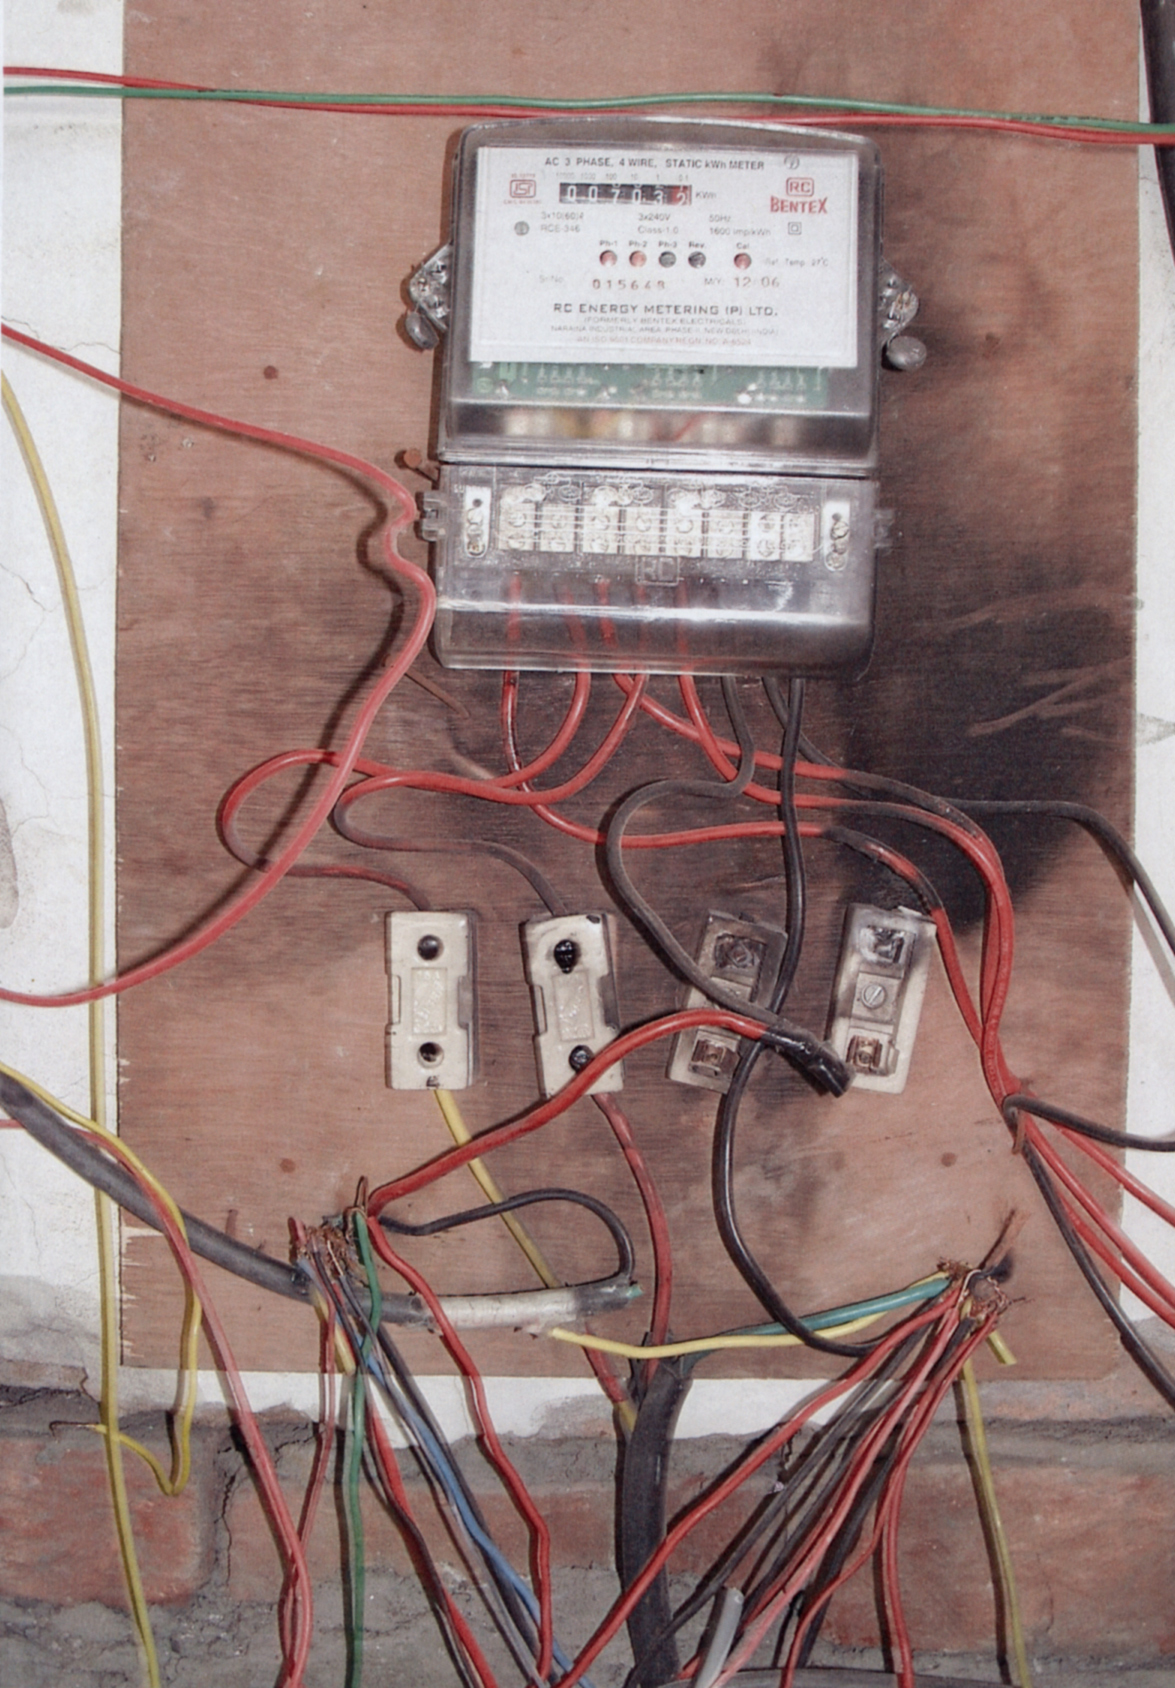 Why Are Bare Electrical Wires Dangerous Wire Center Plug 50 Amp Male To 30 Female Mighty Cord Rv Wiring A105030avp World S Worst The Top Three Most Shocking Rh Eandt Theiet Org Installation Pictures Of Unsafe Hazards